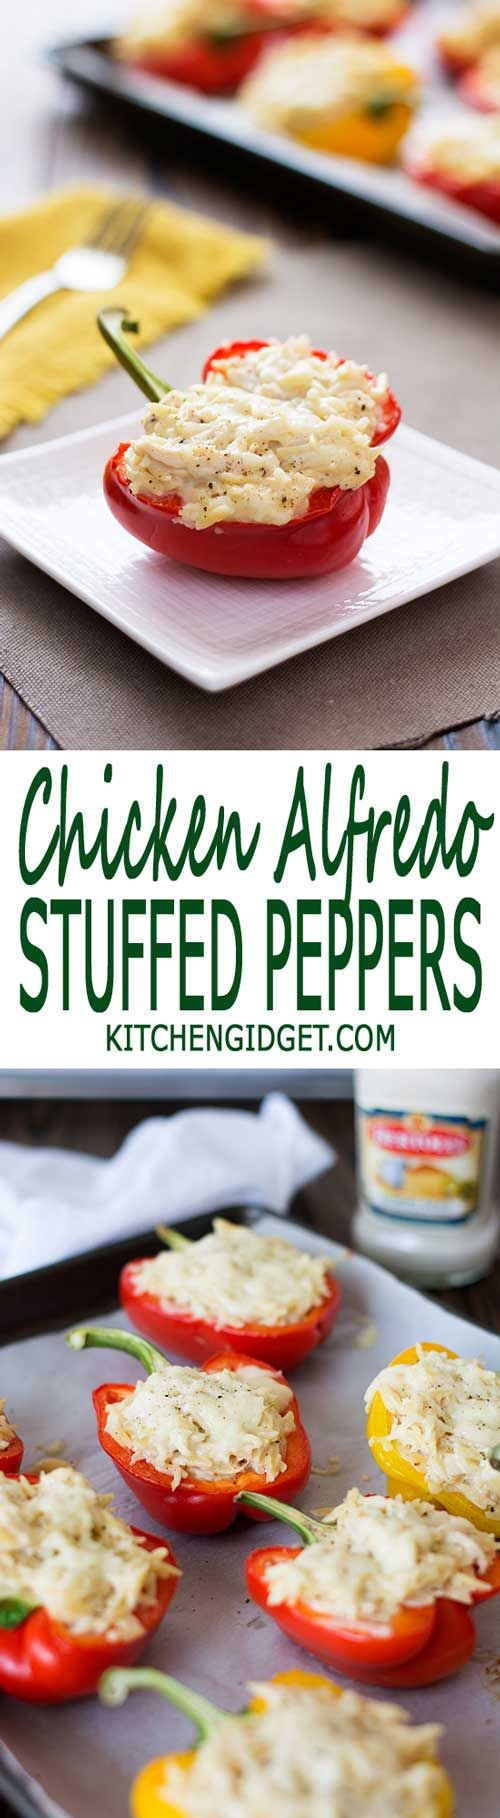 Creamy Chicken Alfredo Stuffed Peppers with orzo pasta. Only 5 ingredients for a quick and easy dinner!   Kitchen Gidget (Low Carb Vegetables Mozzarella)